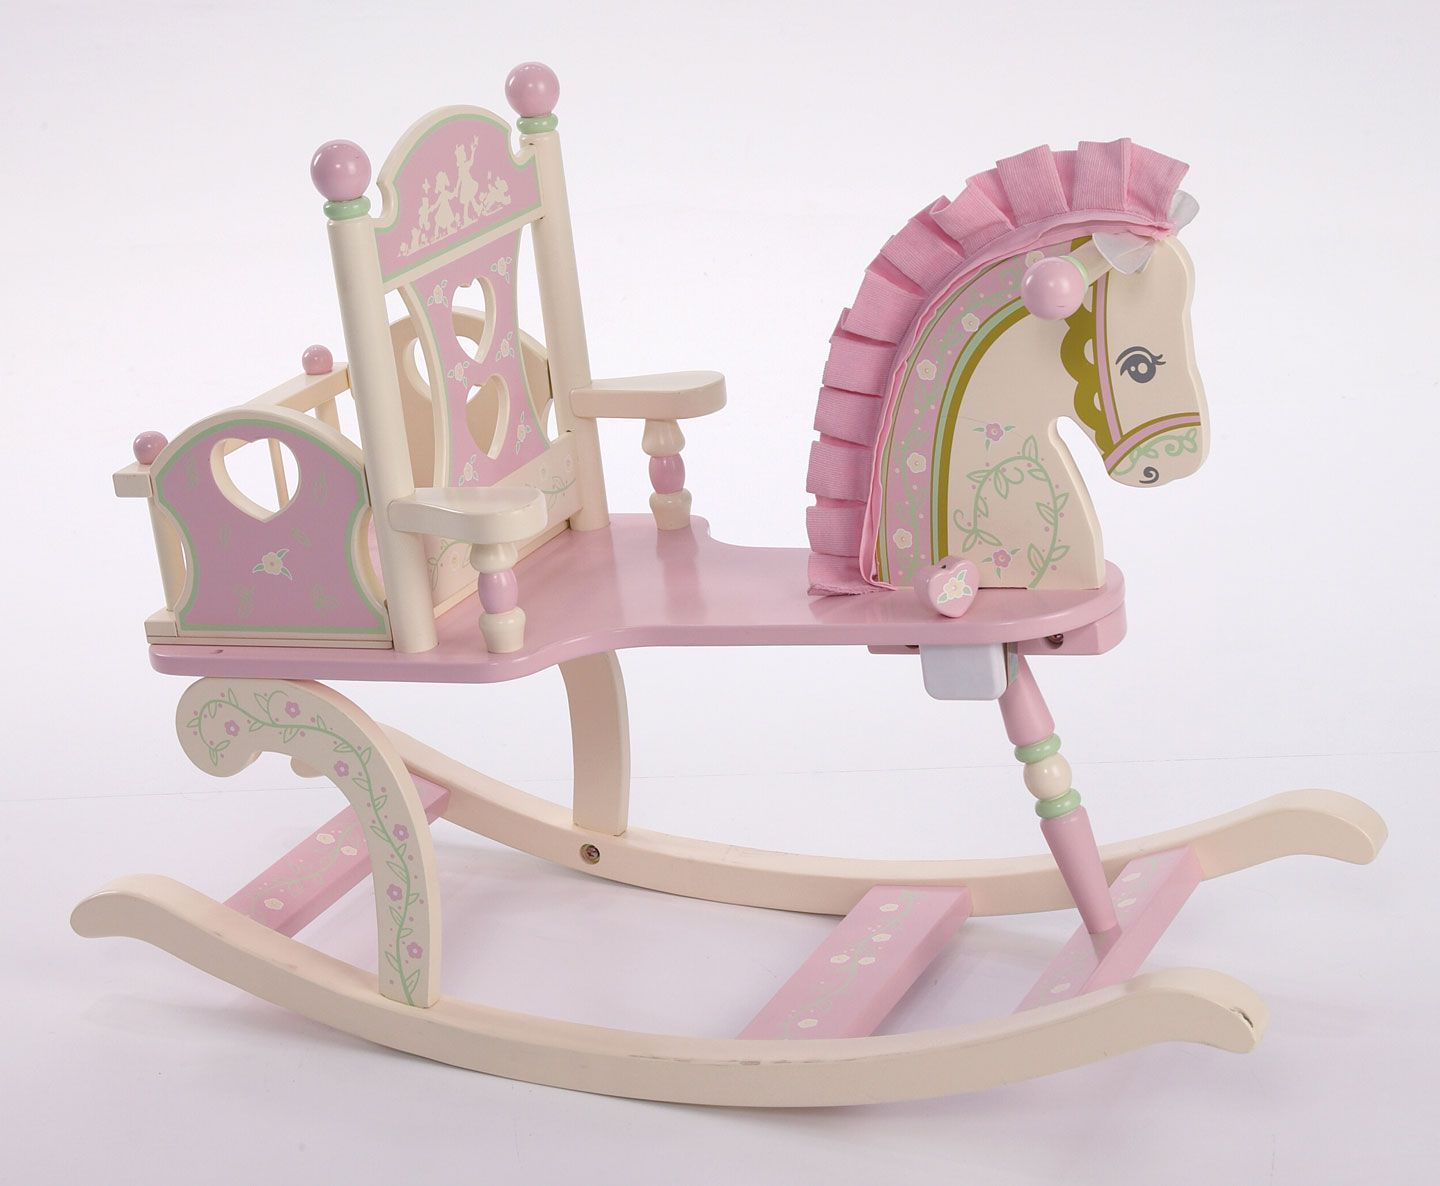 Swell Super Cute Rocking Chair For A Little Girl 200 Baby Gear Creativecarmelina Interior Chair Design Creativecarmelinacom